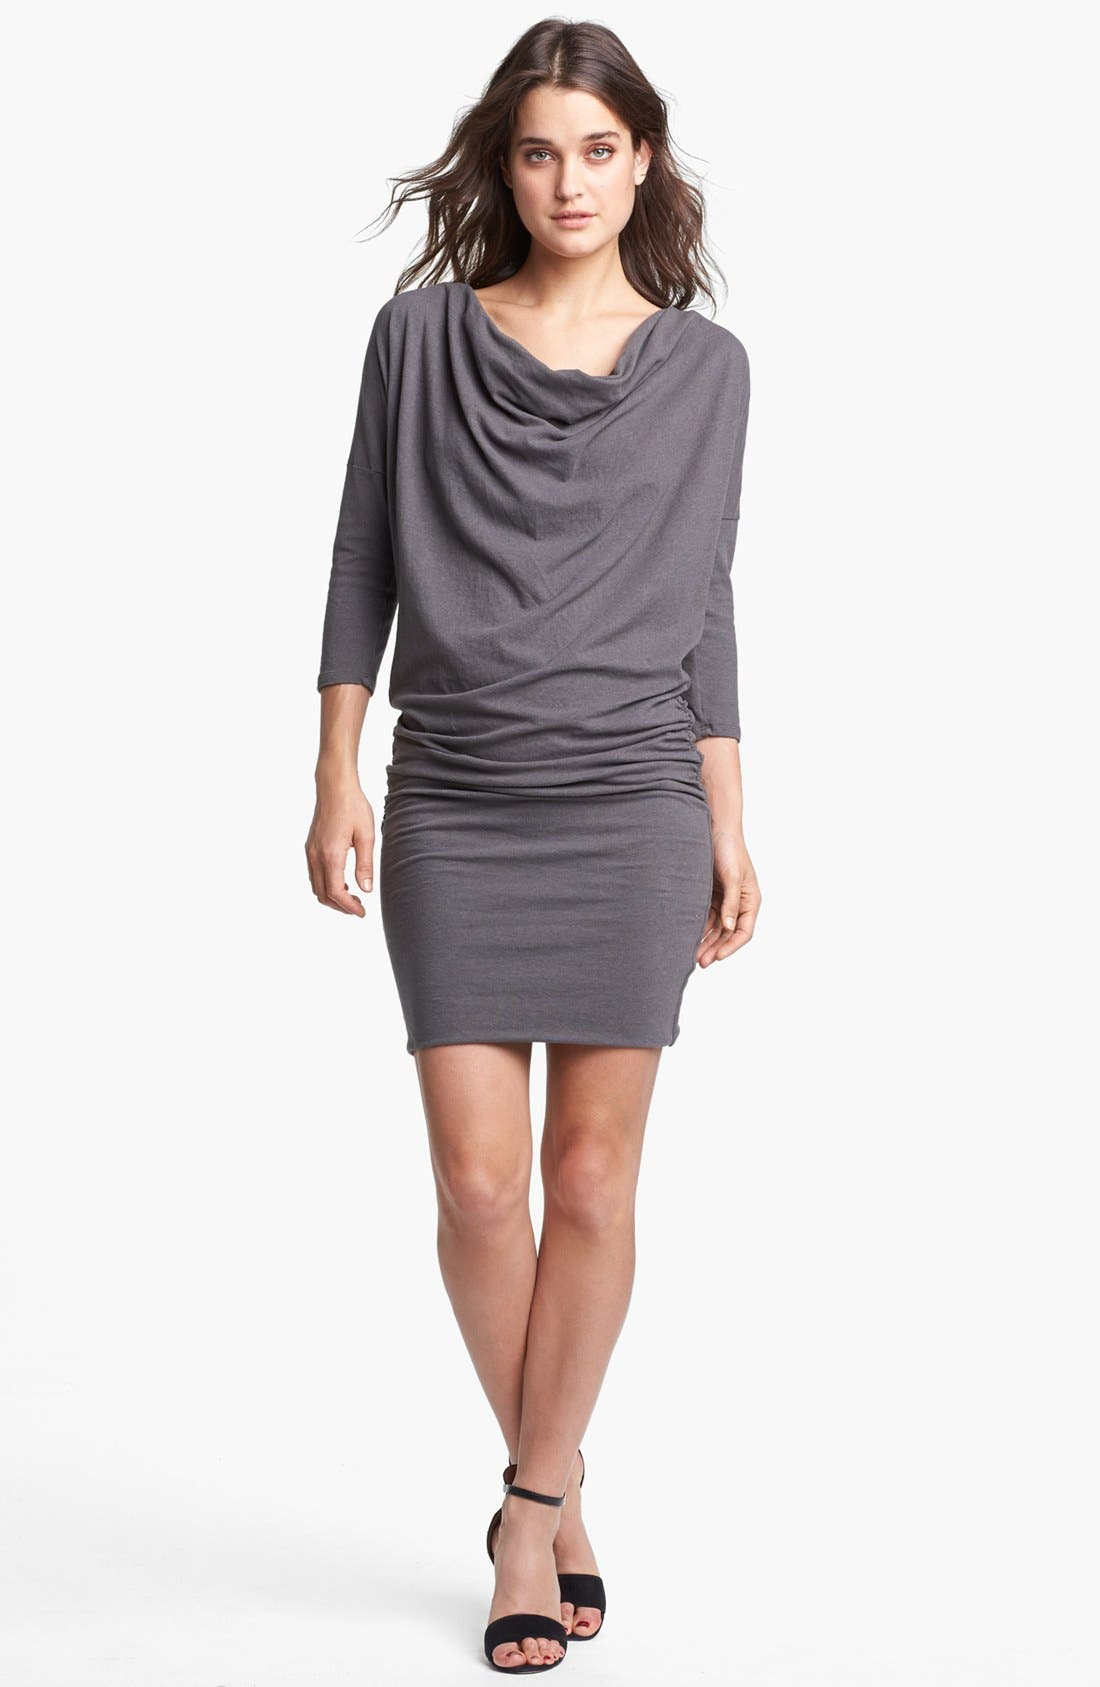 Alternate Image 1 Selected - James Perse Cowl Neck Dolman Sleeve Dress